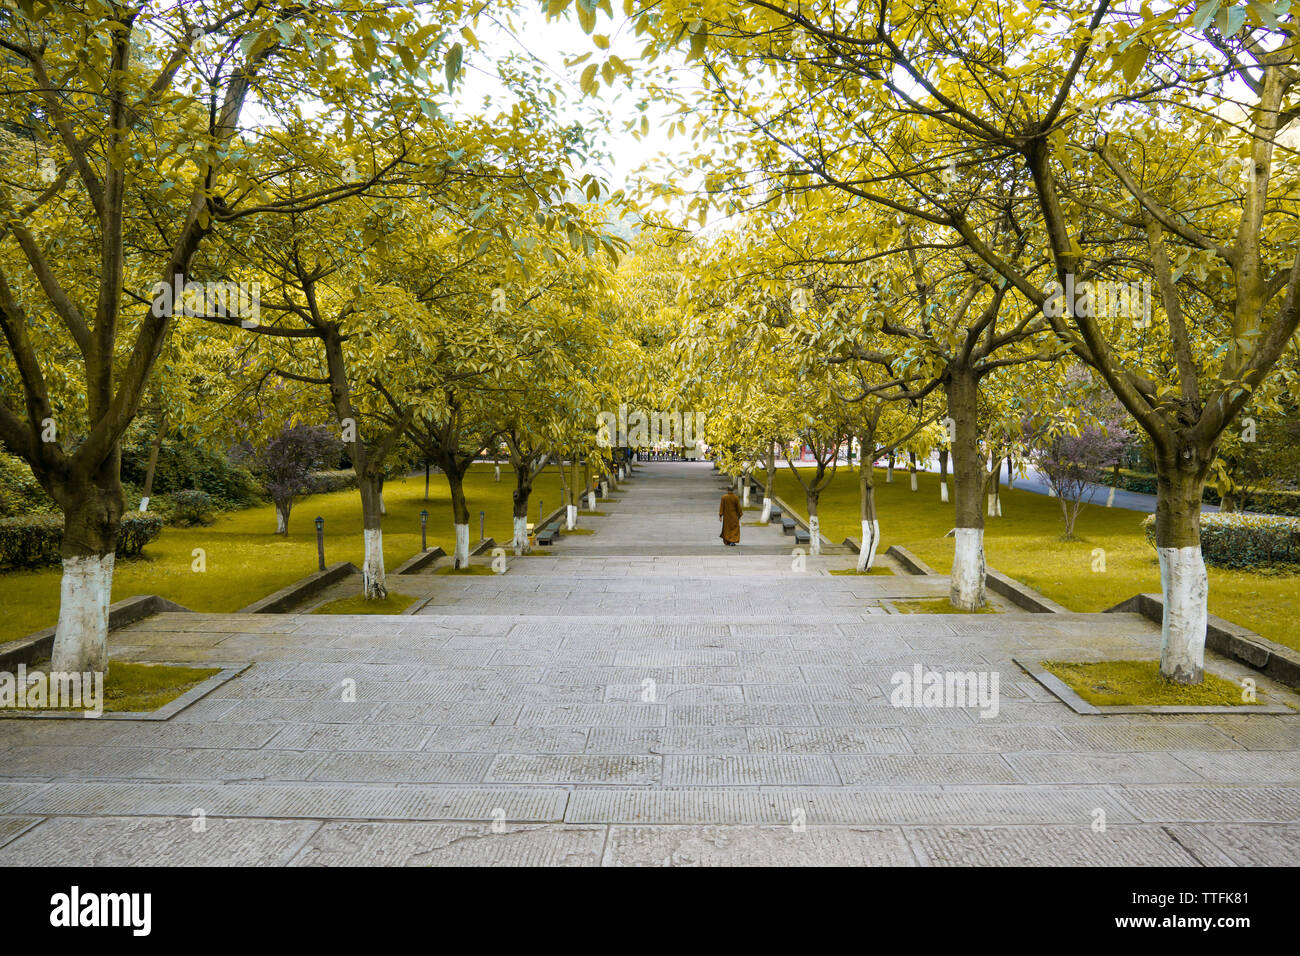 Diminishing perspective of steps amidst trees at park - Stock Image